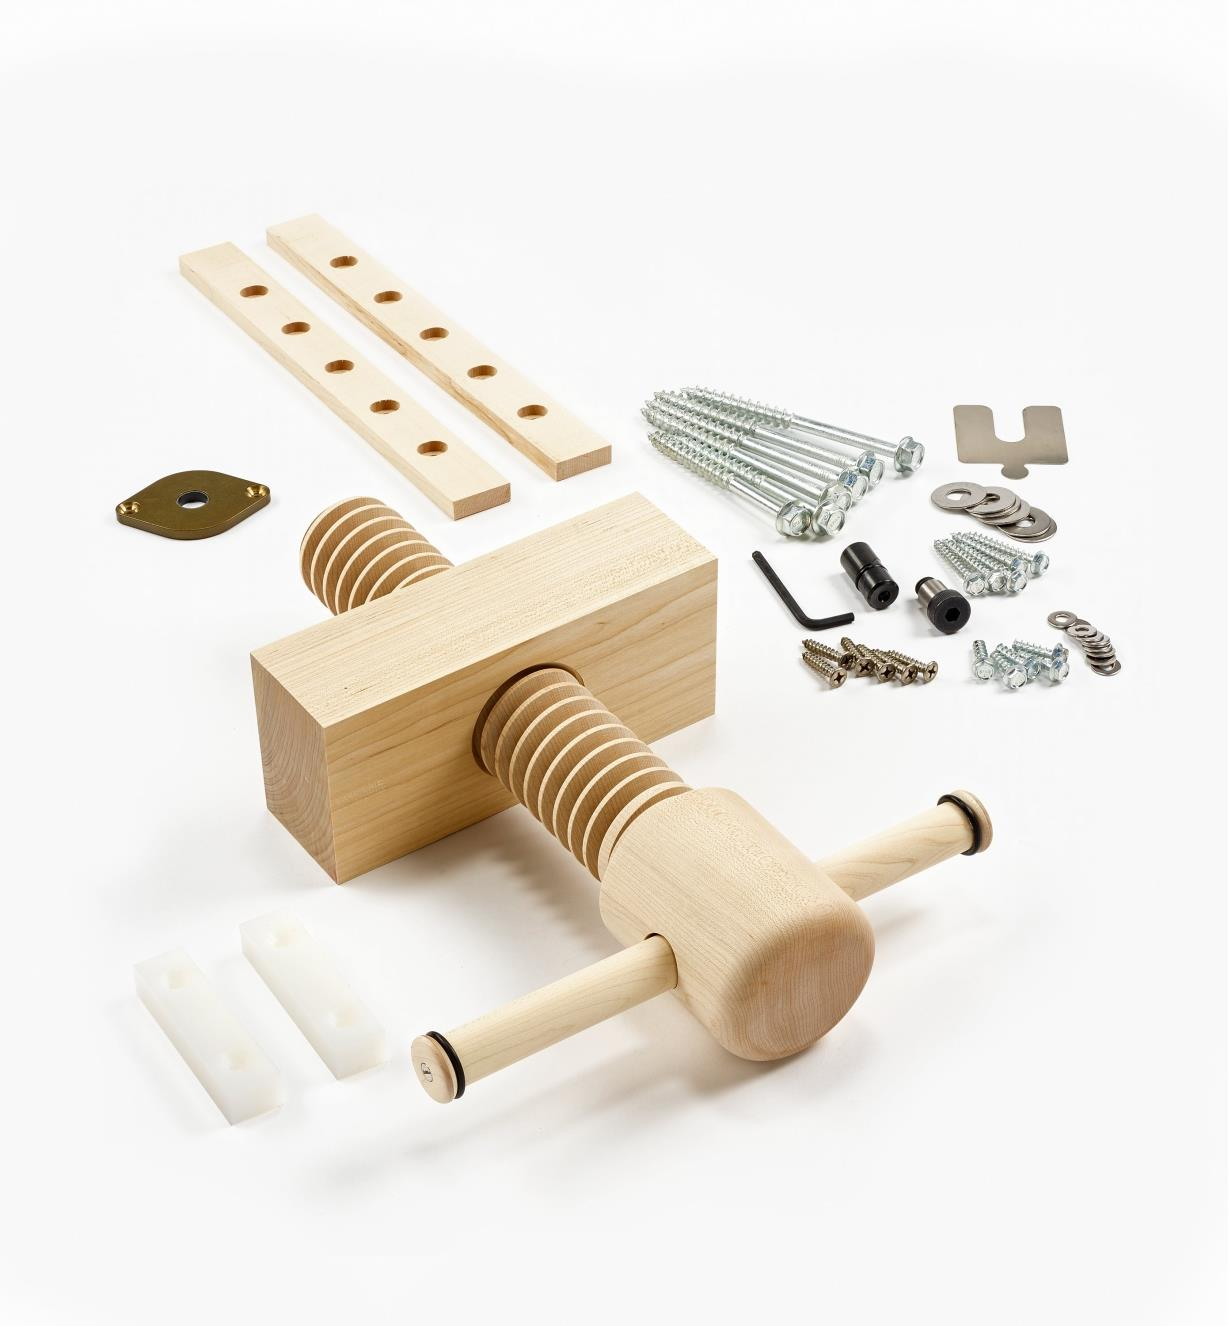 06G0220 - Wooden Tail Vise Kit